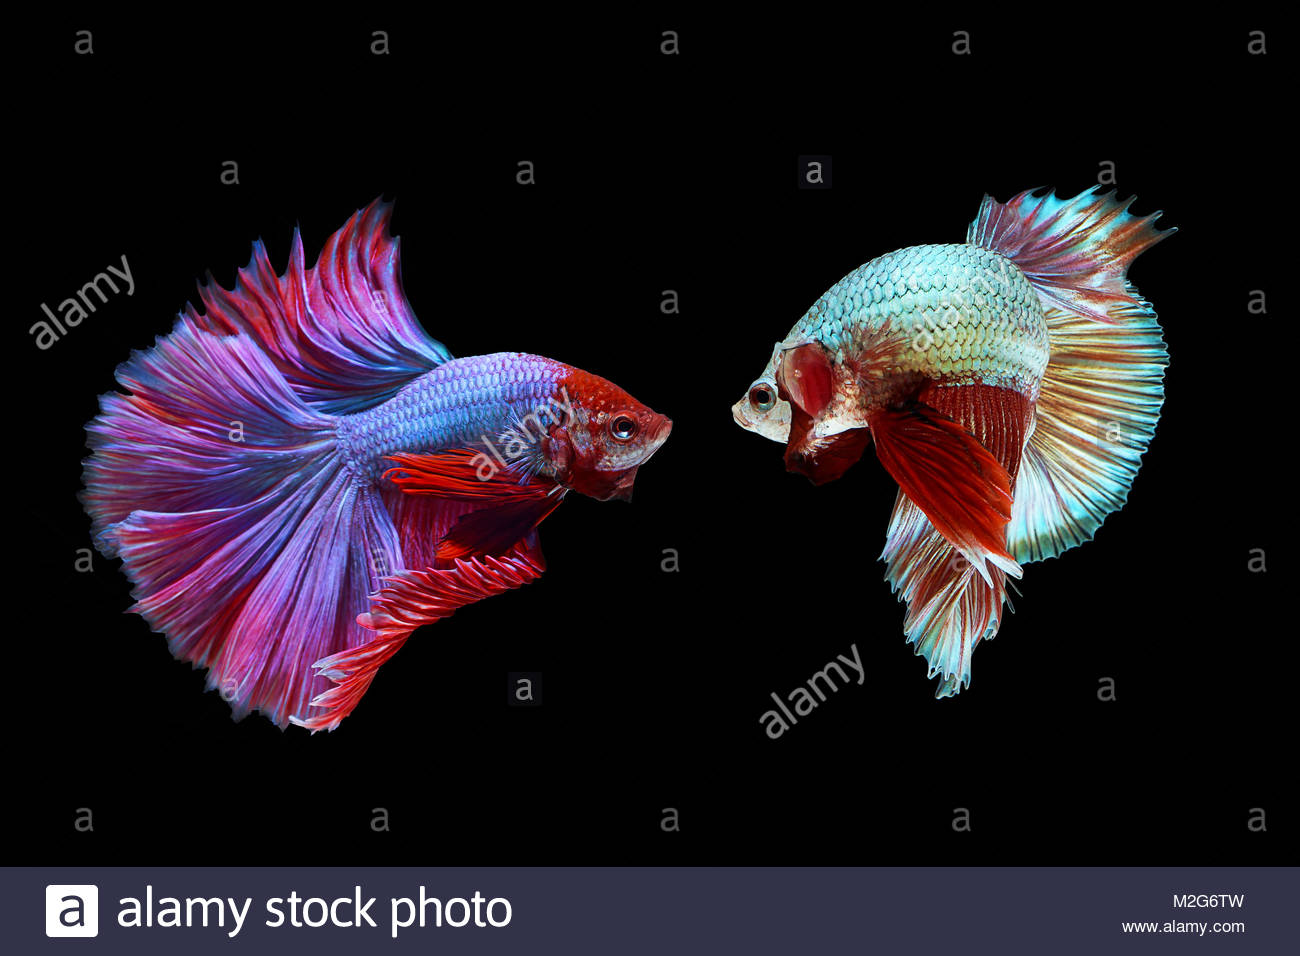 Blue siamese fighting fish stock photos blue siamese for Betta fish light